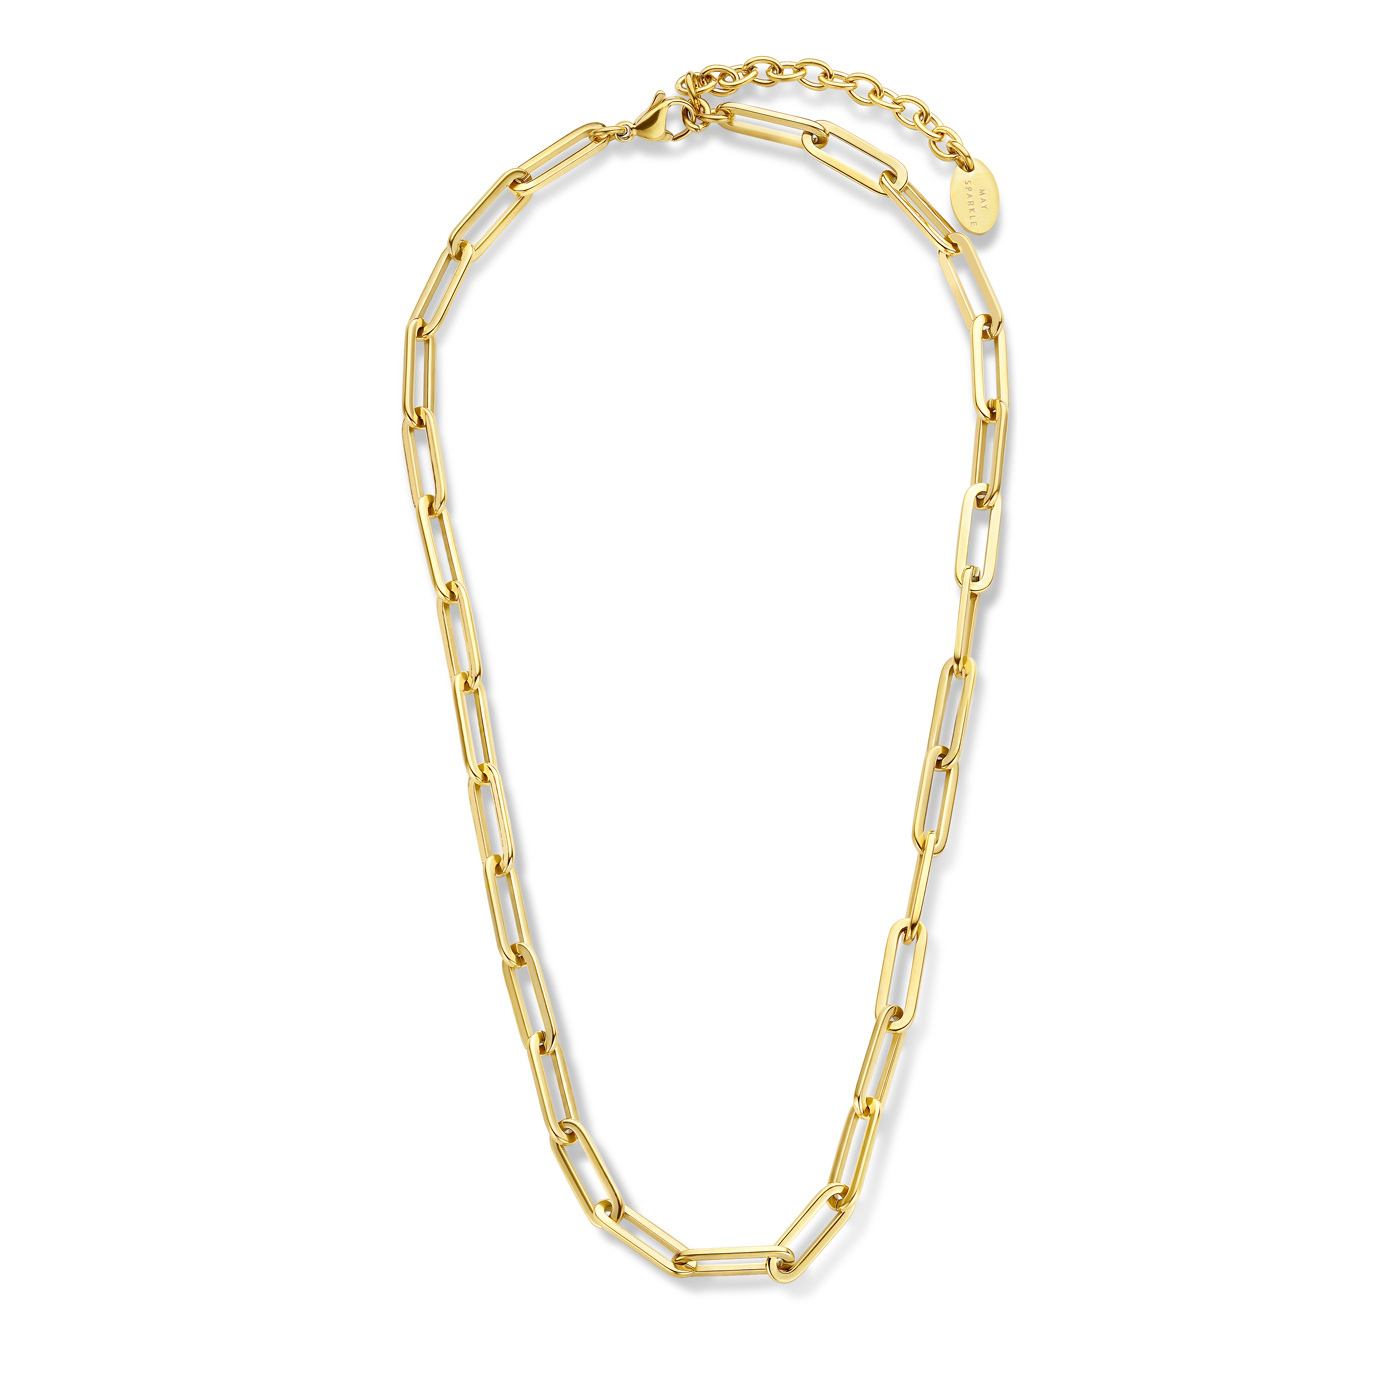 May Sparkle Forever Young Lily goudkleurige ketting